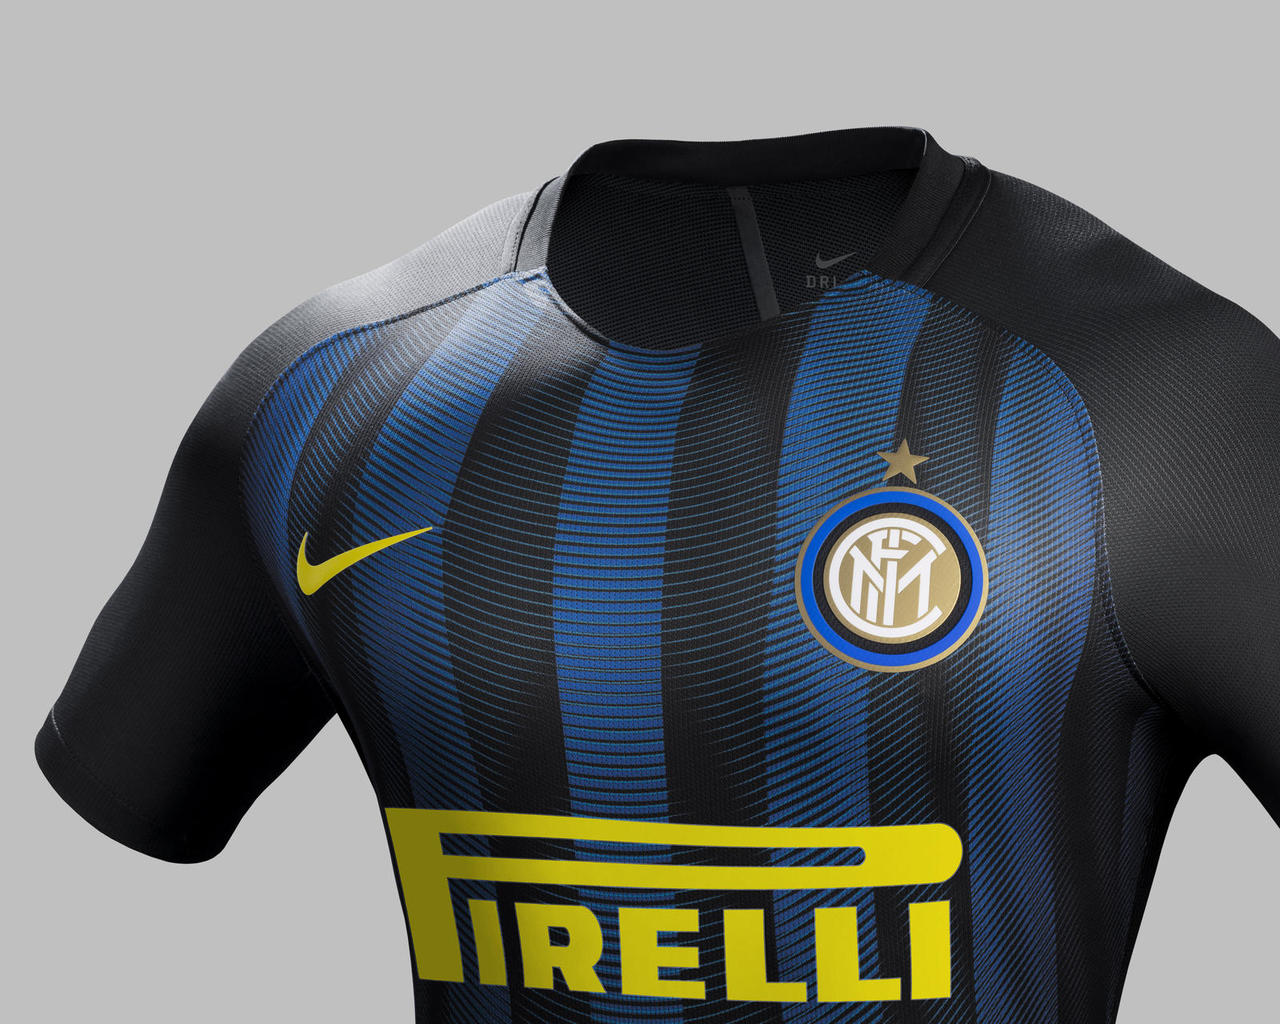 on sale 093fa 43c6e Inter Milan 16/17 Nike Home Kit | 16/17 Kits | Football ...